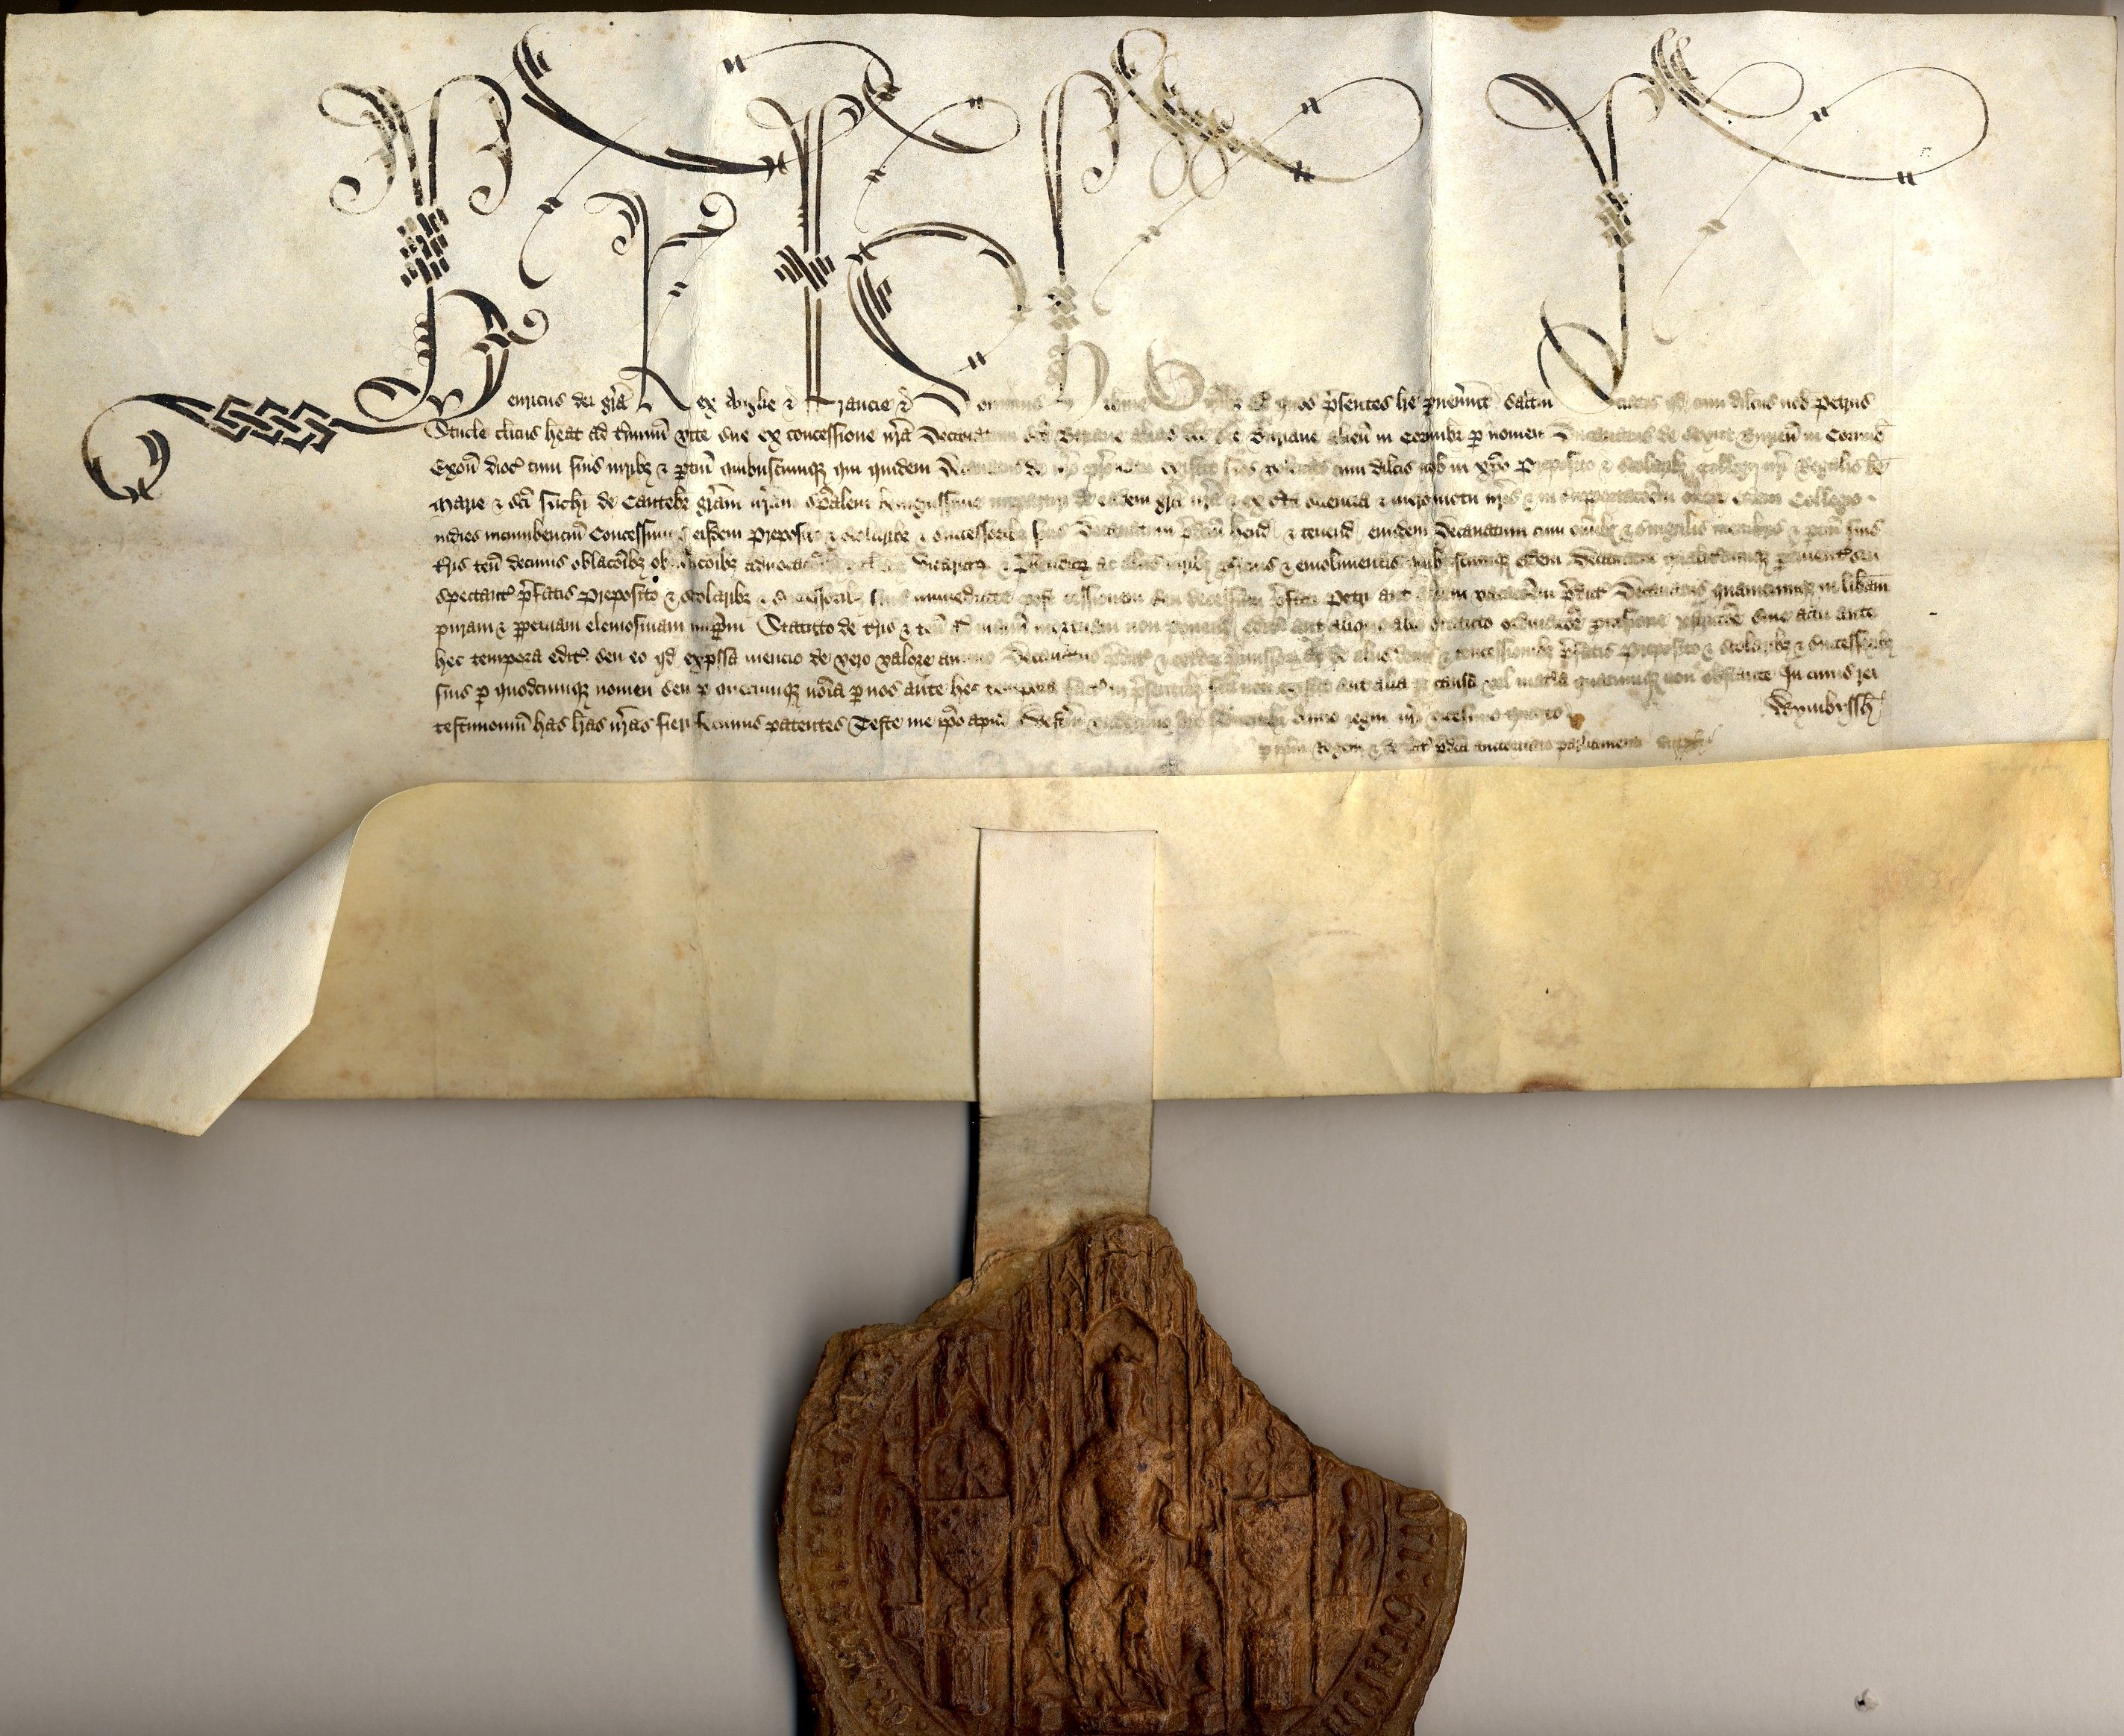 Founder's grant written on parchment in Latin, with a